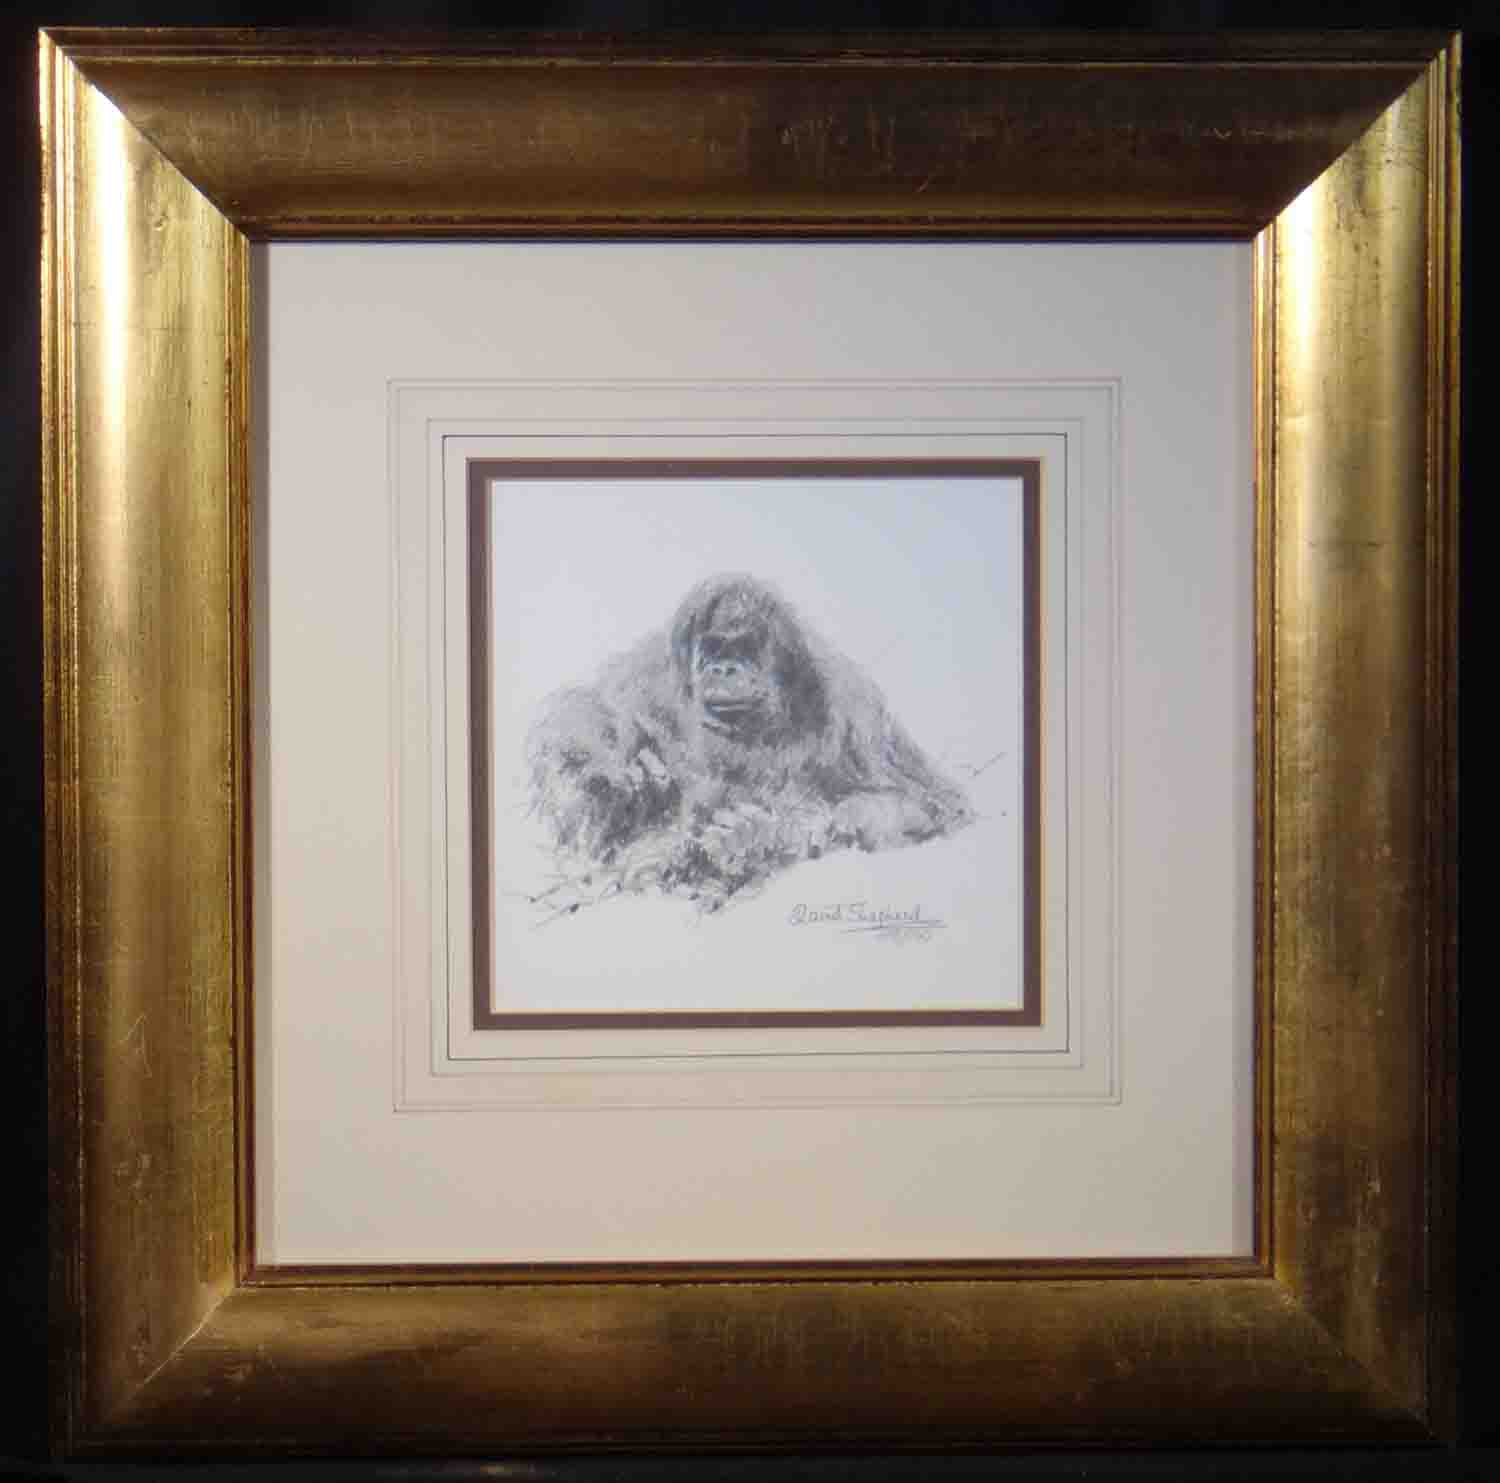 david shepherd orang-utan sketch